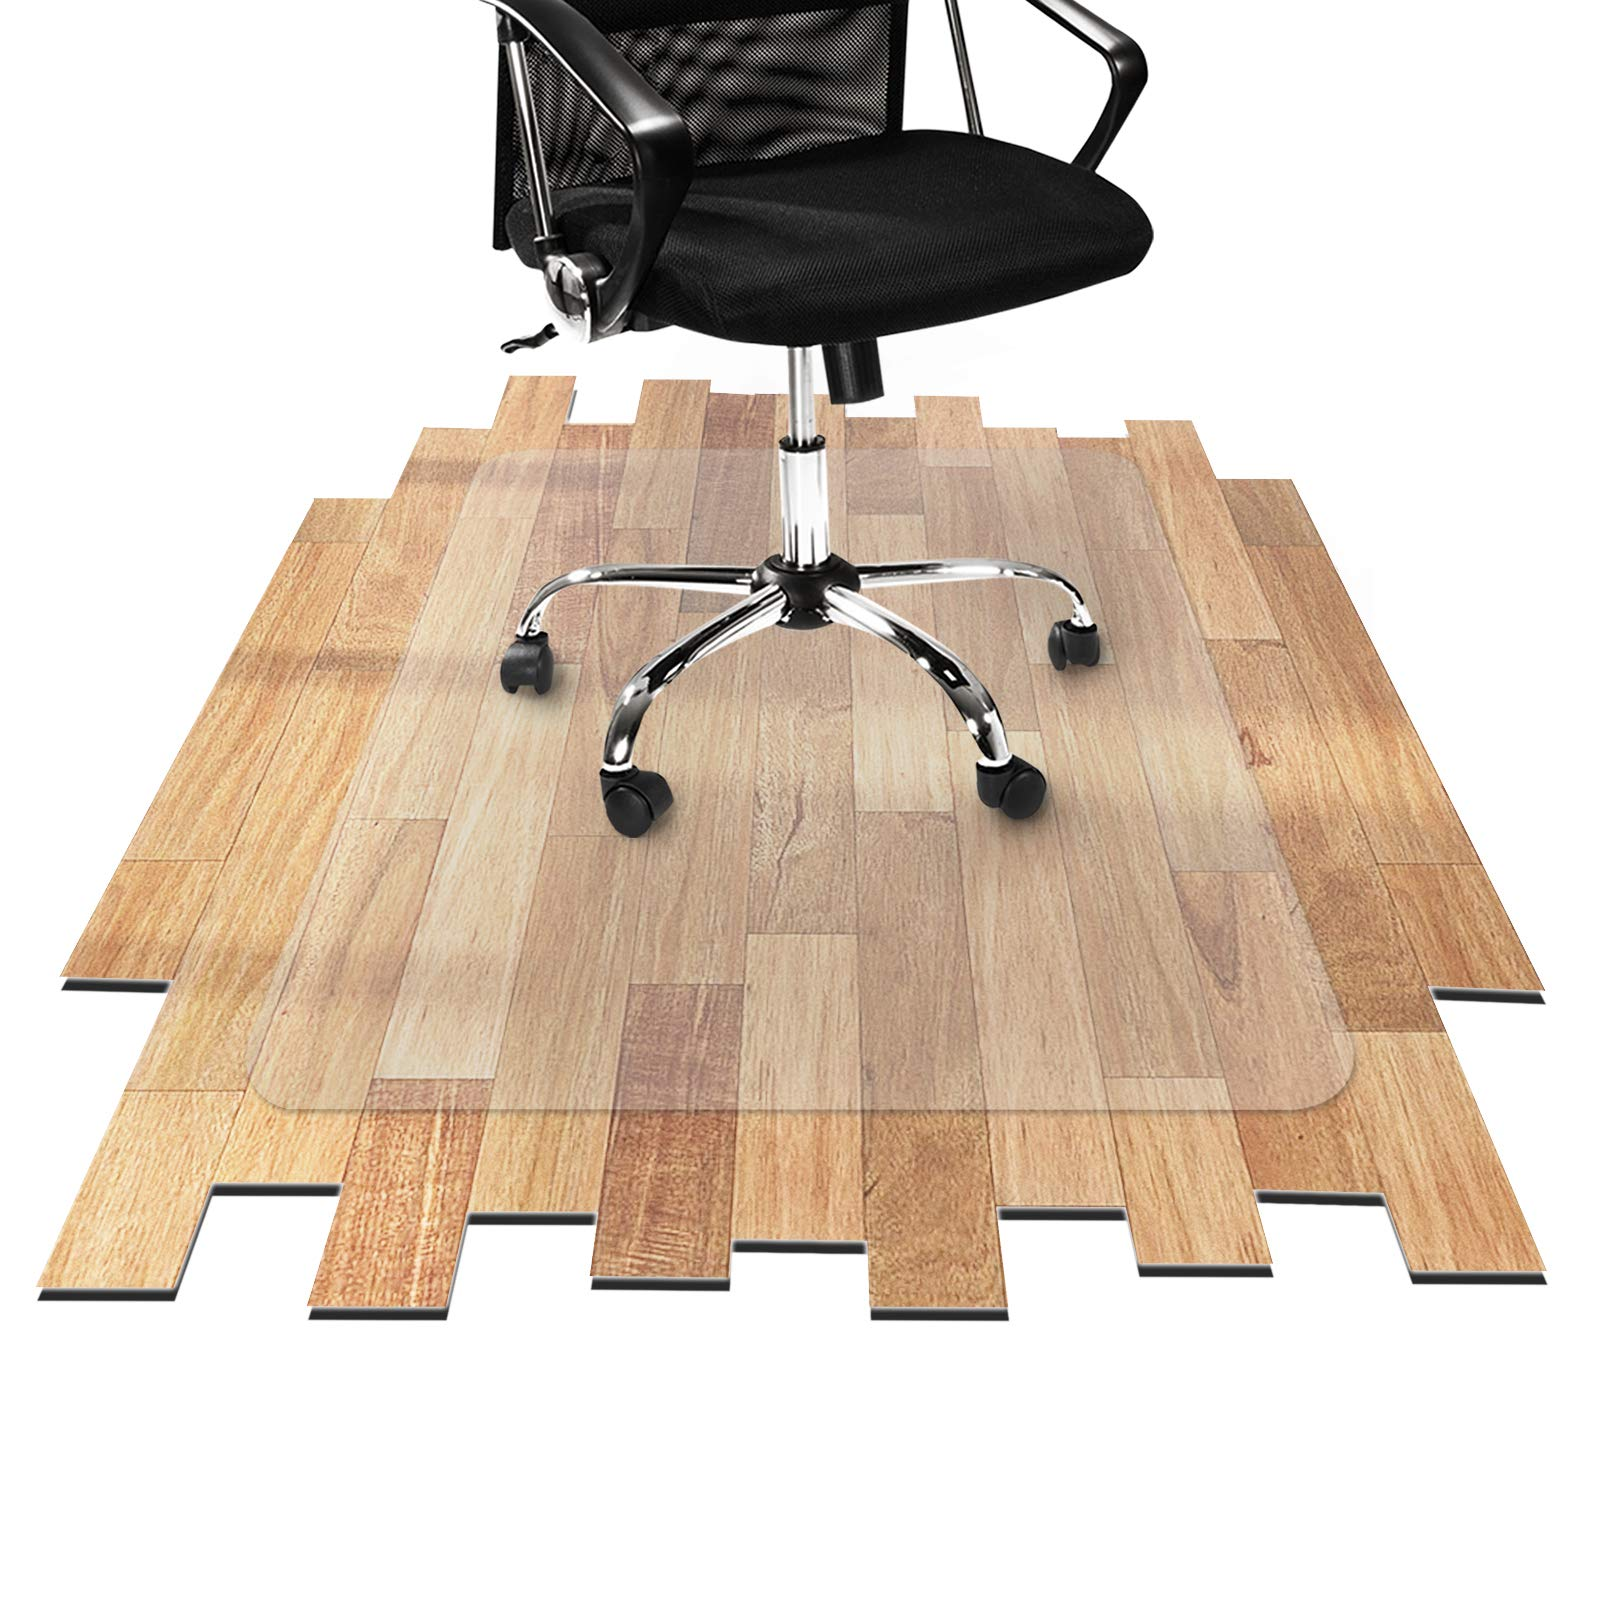 Desk Chair Mat for Hardwood Floor - Hard Floor Protection Mat for Office & Home | Many Sizes Available | Clear - 30'' x 48''